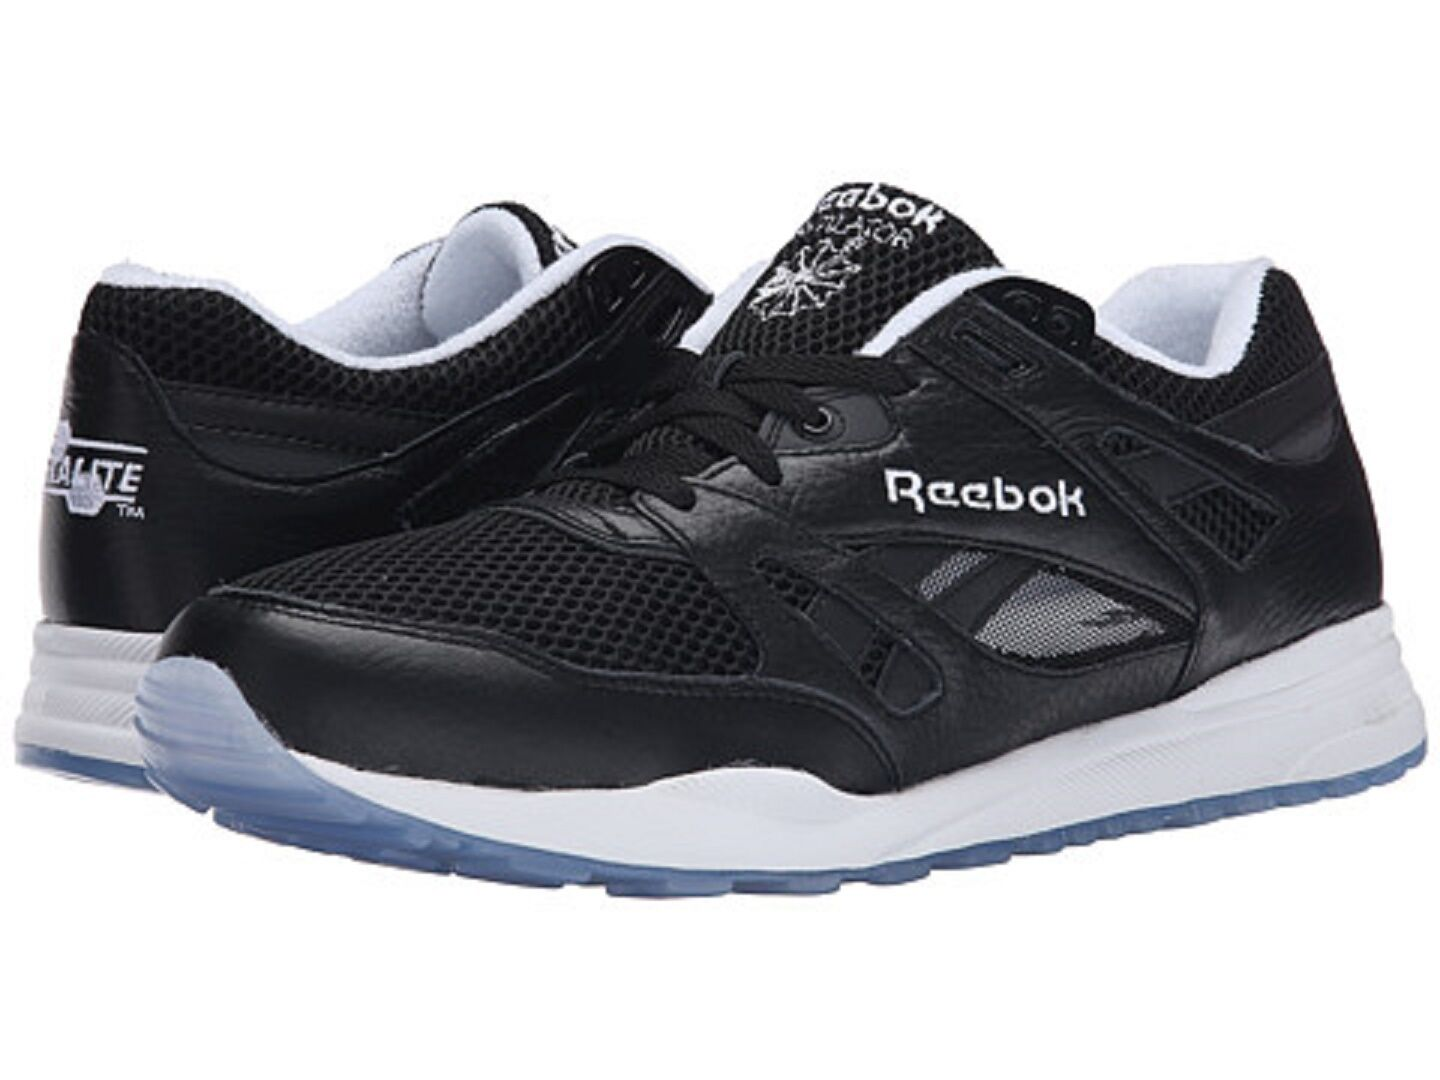 REEBOK M49040 VENTILATOR ICE Mn's (M) Black/White Mesh/Leather Athletic Shoes